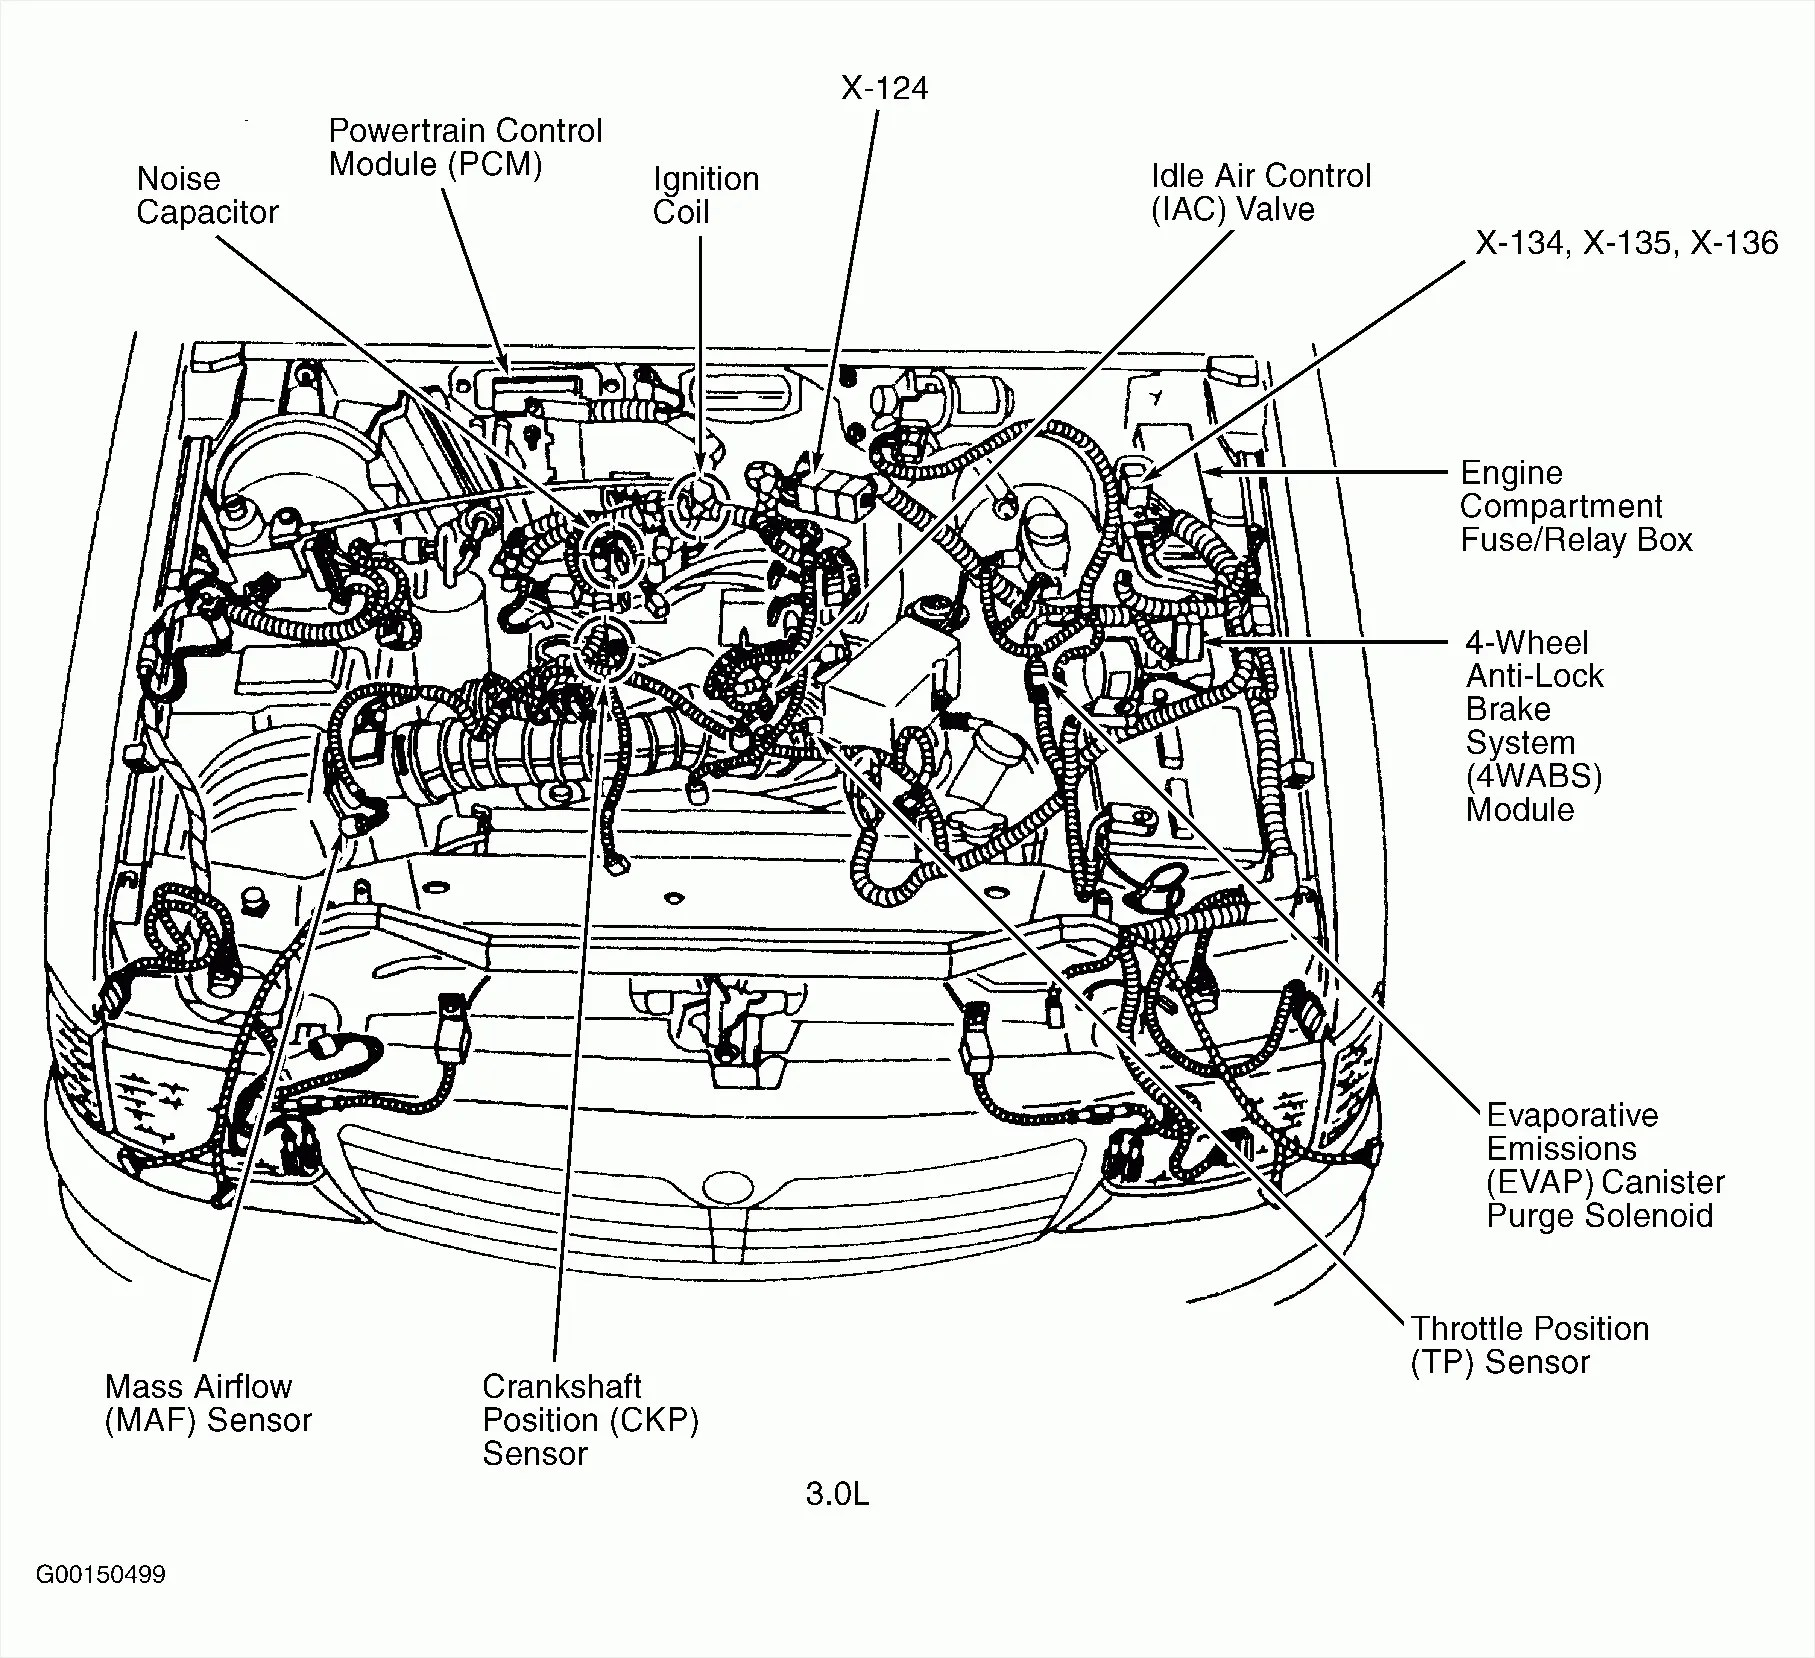 hight resolution of nissan 3 8 engine diagram wiring diagrams 1999 chrysler 3 8 engine diagram 2006 chrysler 3 8 engine diagram